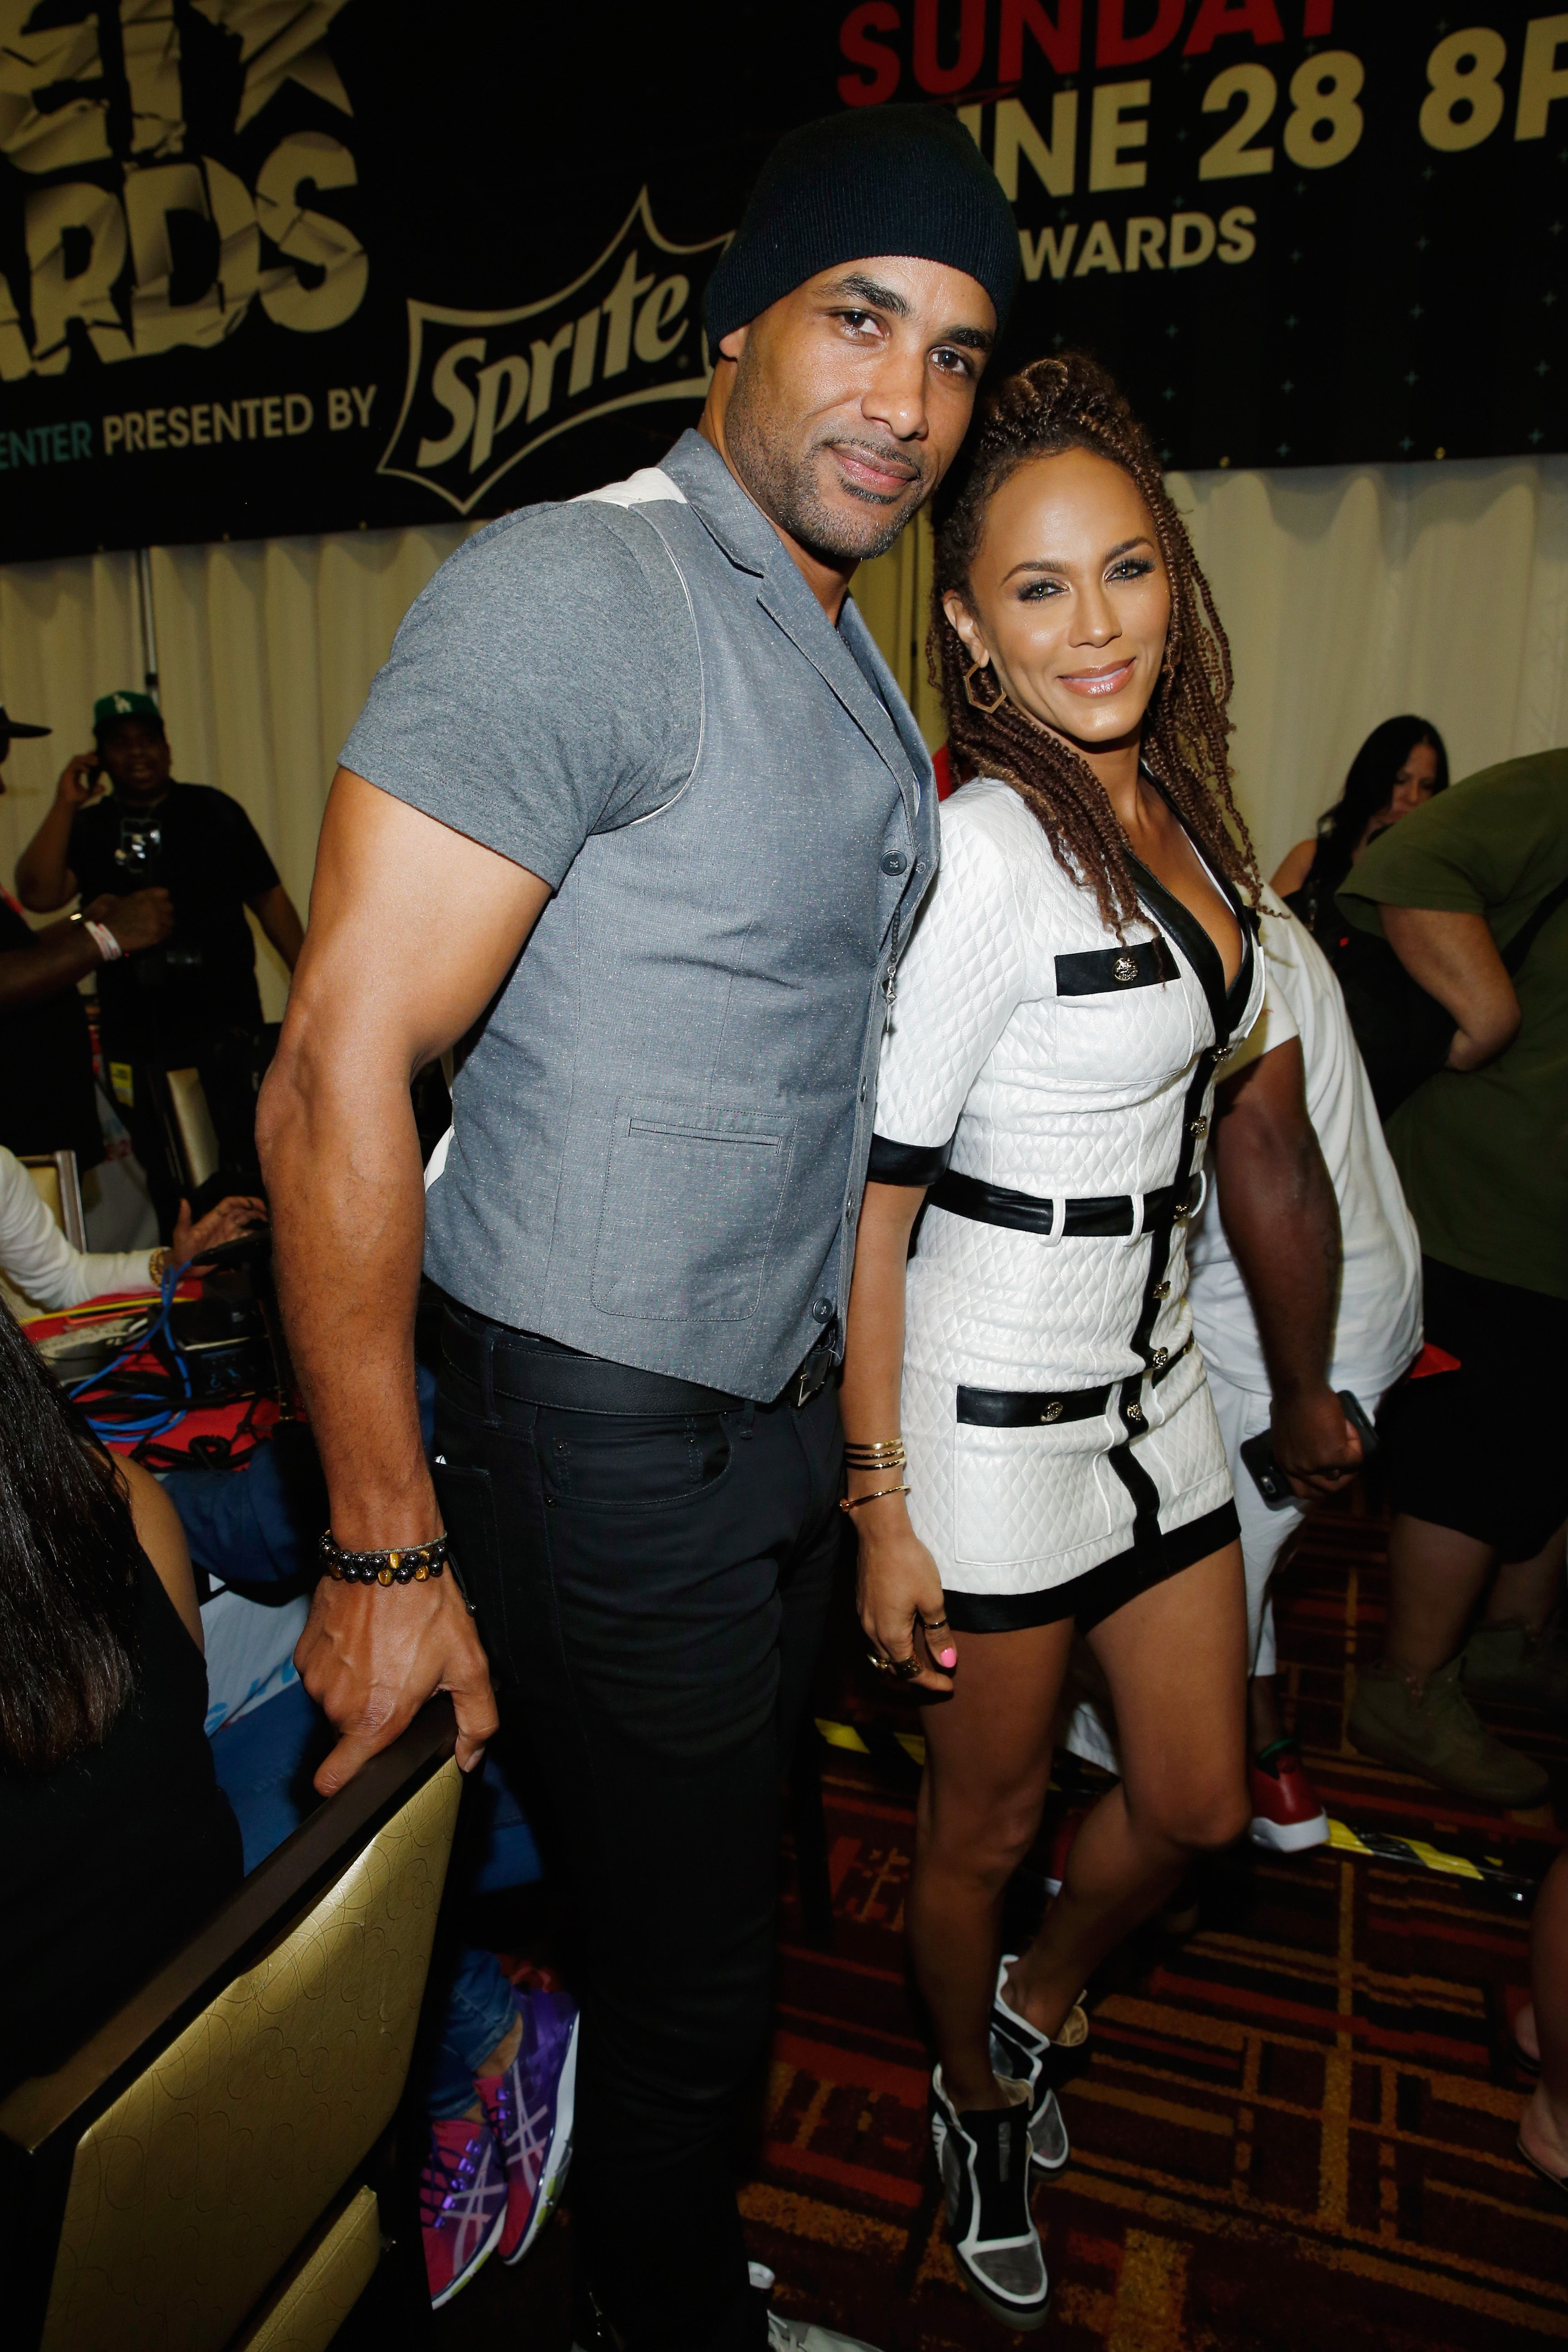 Boris Kodjoe and Nicole Ari Parker attend day 2 at the radio broadcast center during the 2015 BET Experience on June 27, 2015 in Los Angeles, California. | Source: Getty Images